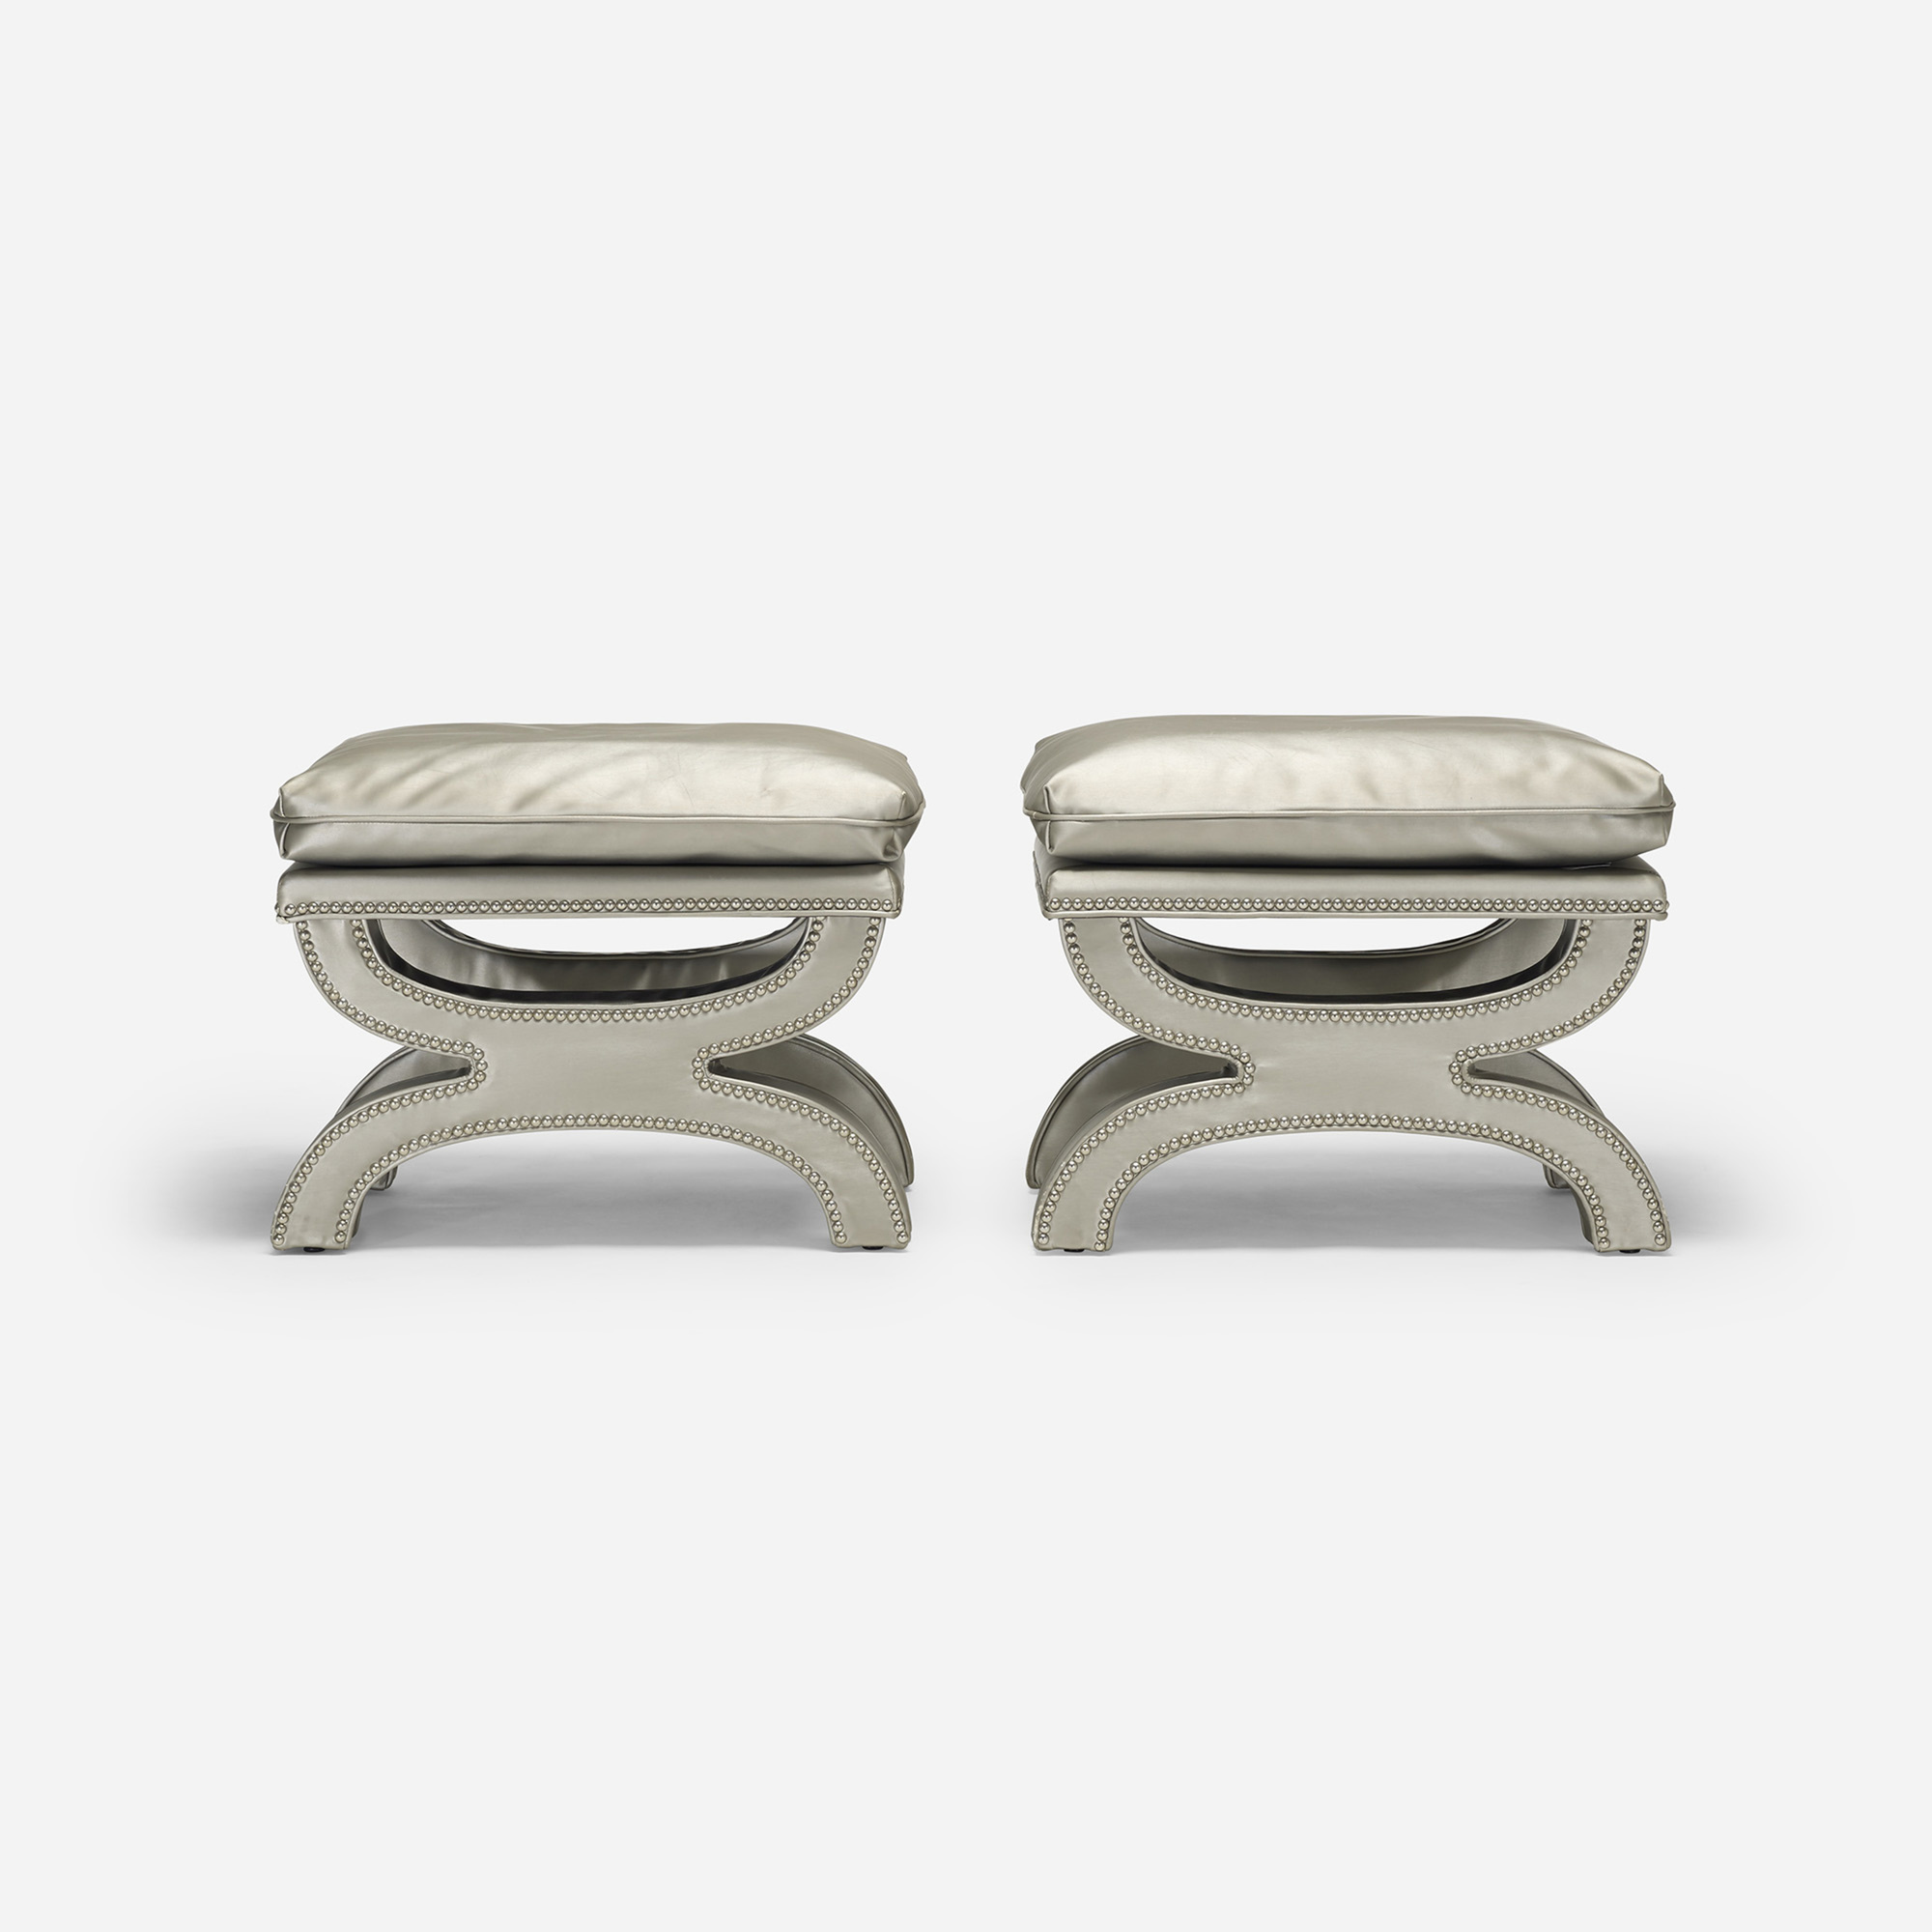 218: Contemporary / stools, pair (1 of 4)